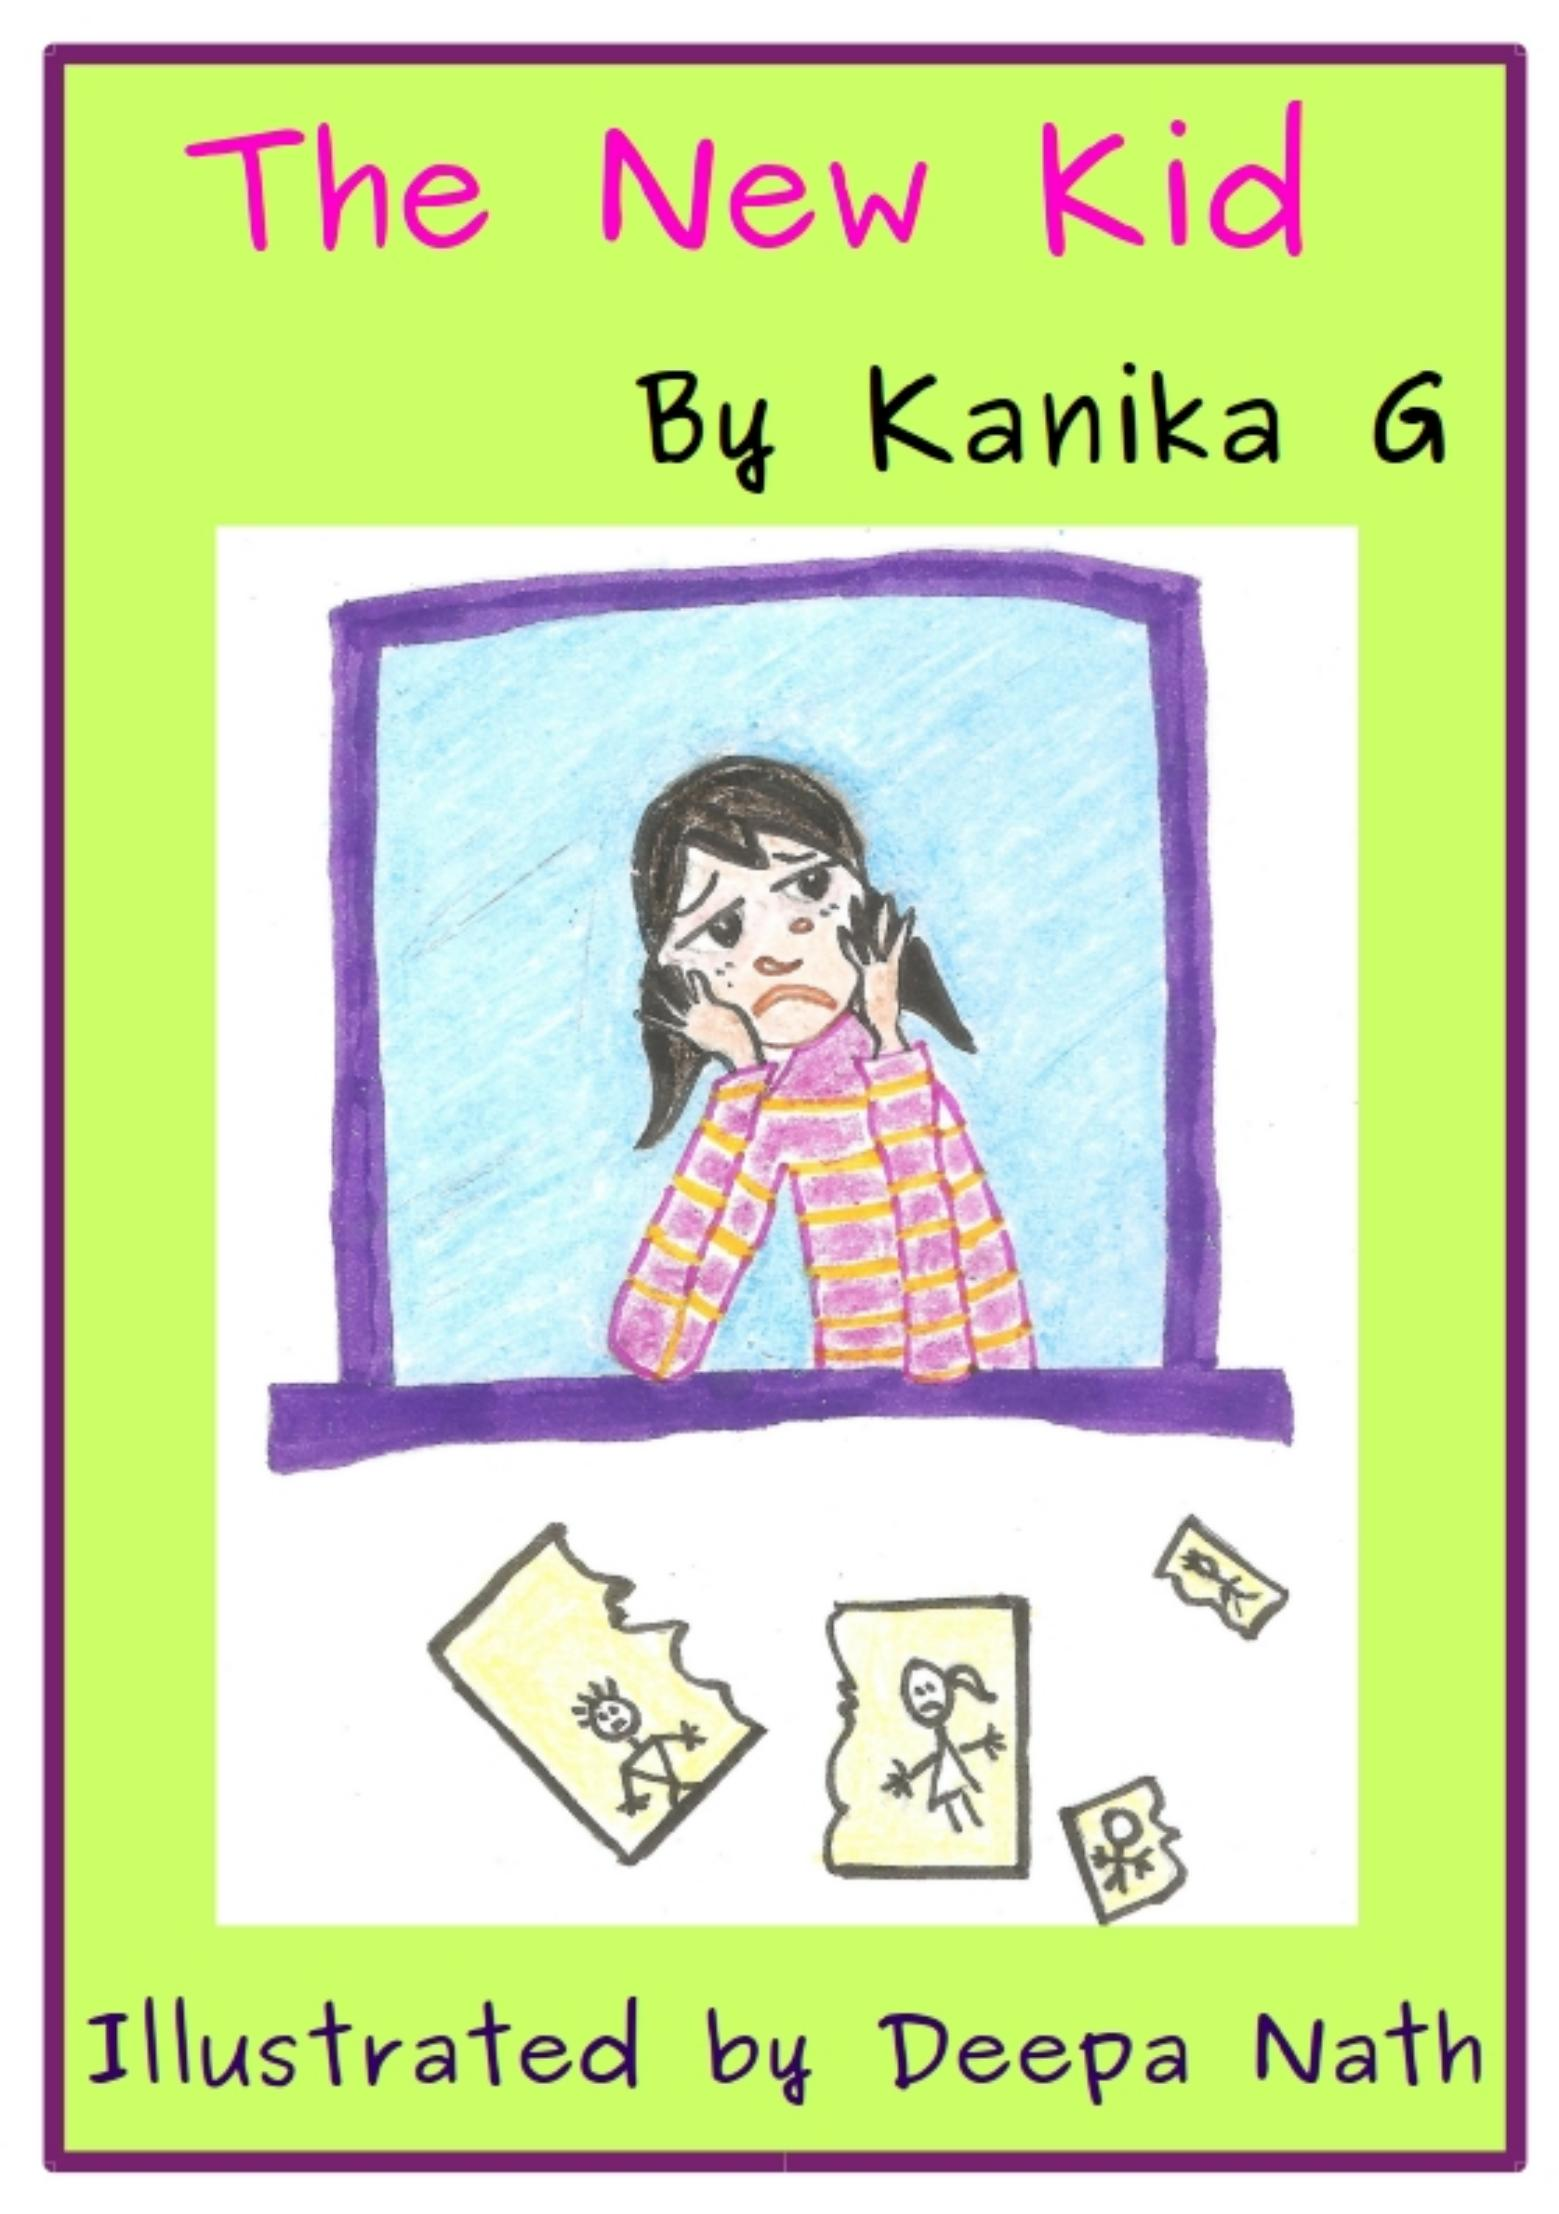 The New Kid by G, Kanika